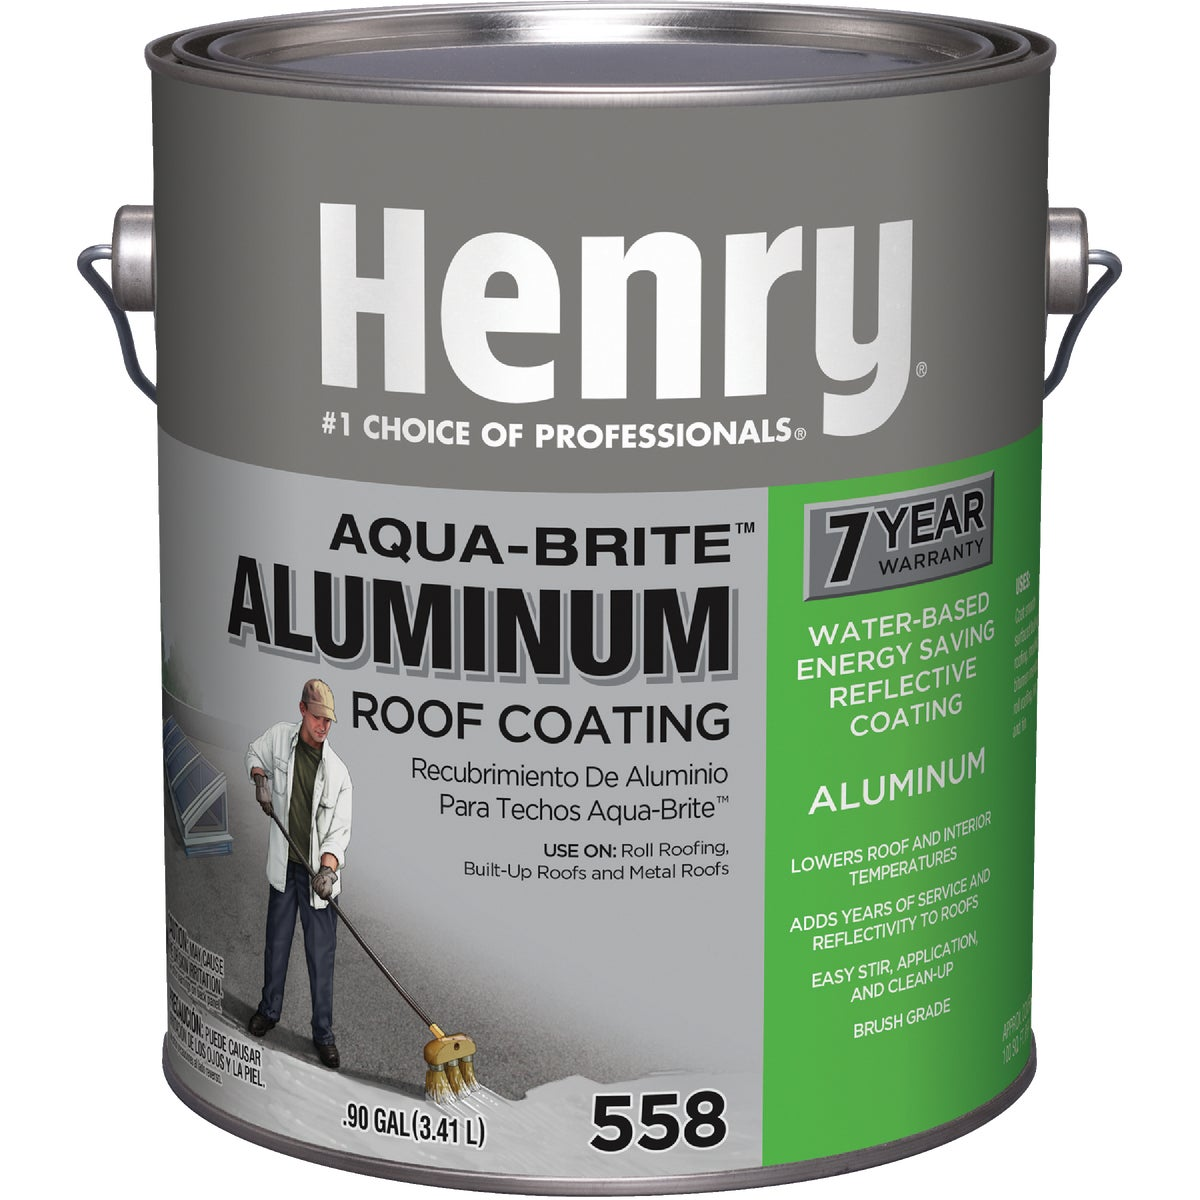 GAL ALUM ROOF COATING - HE558107 by Henry Company